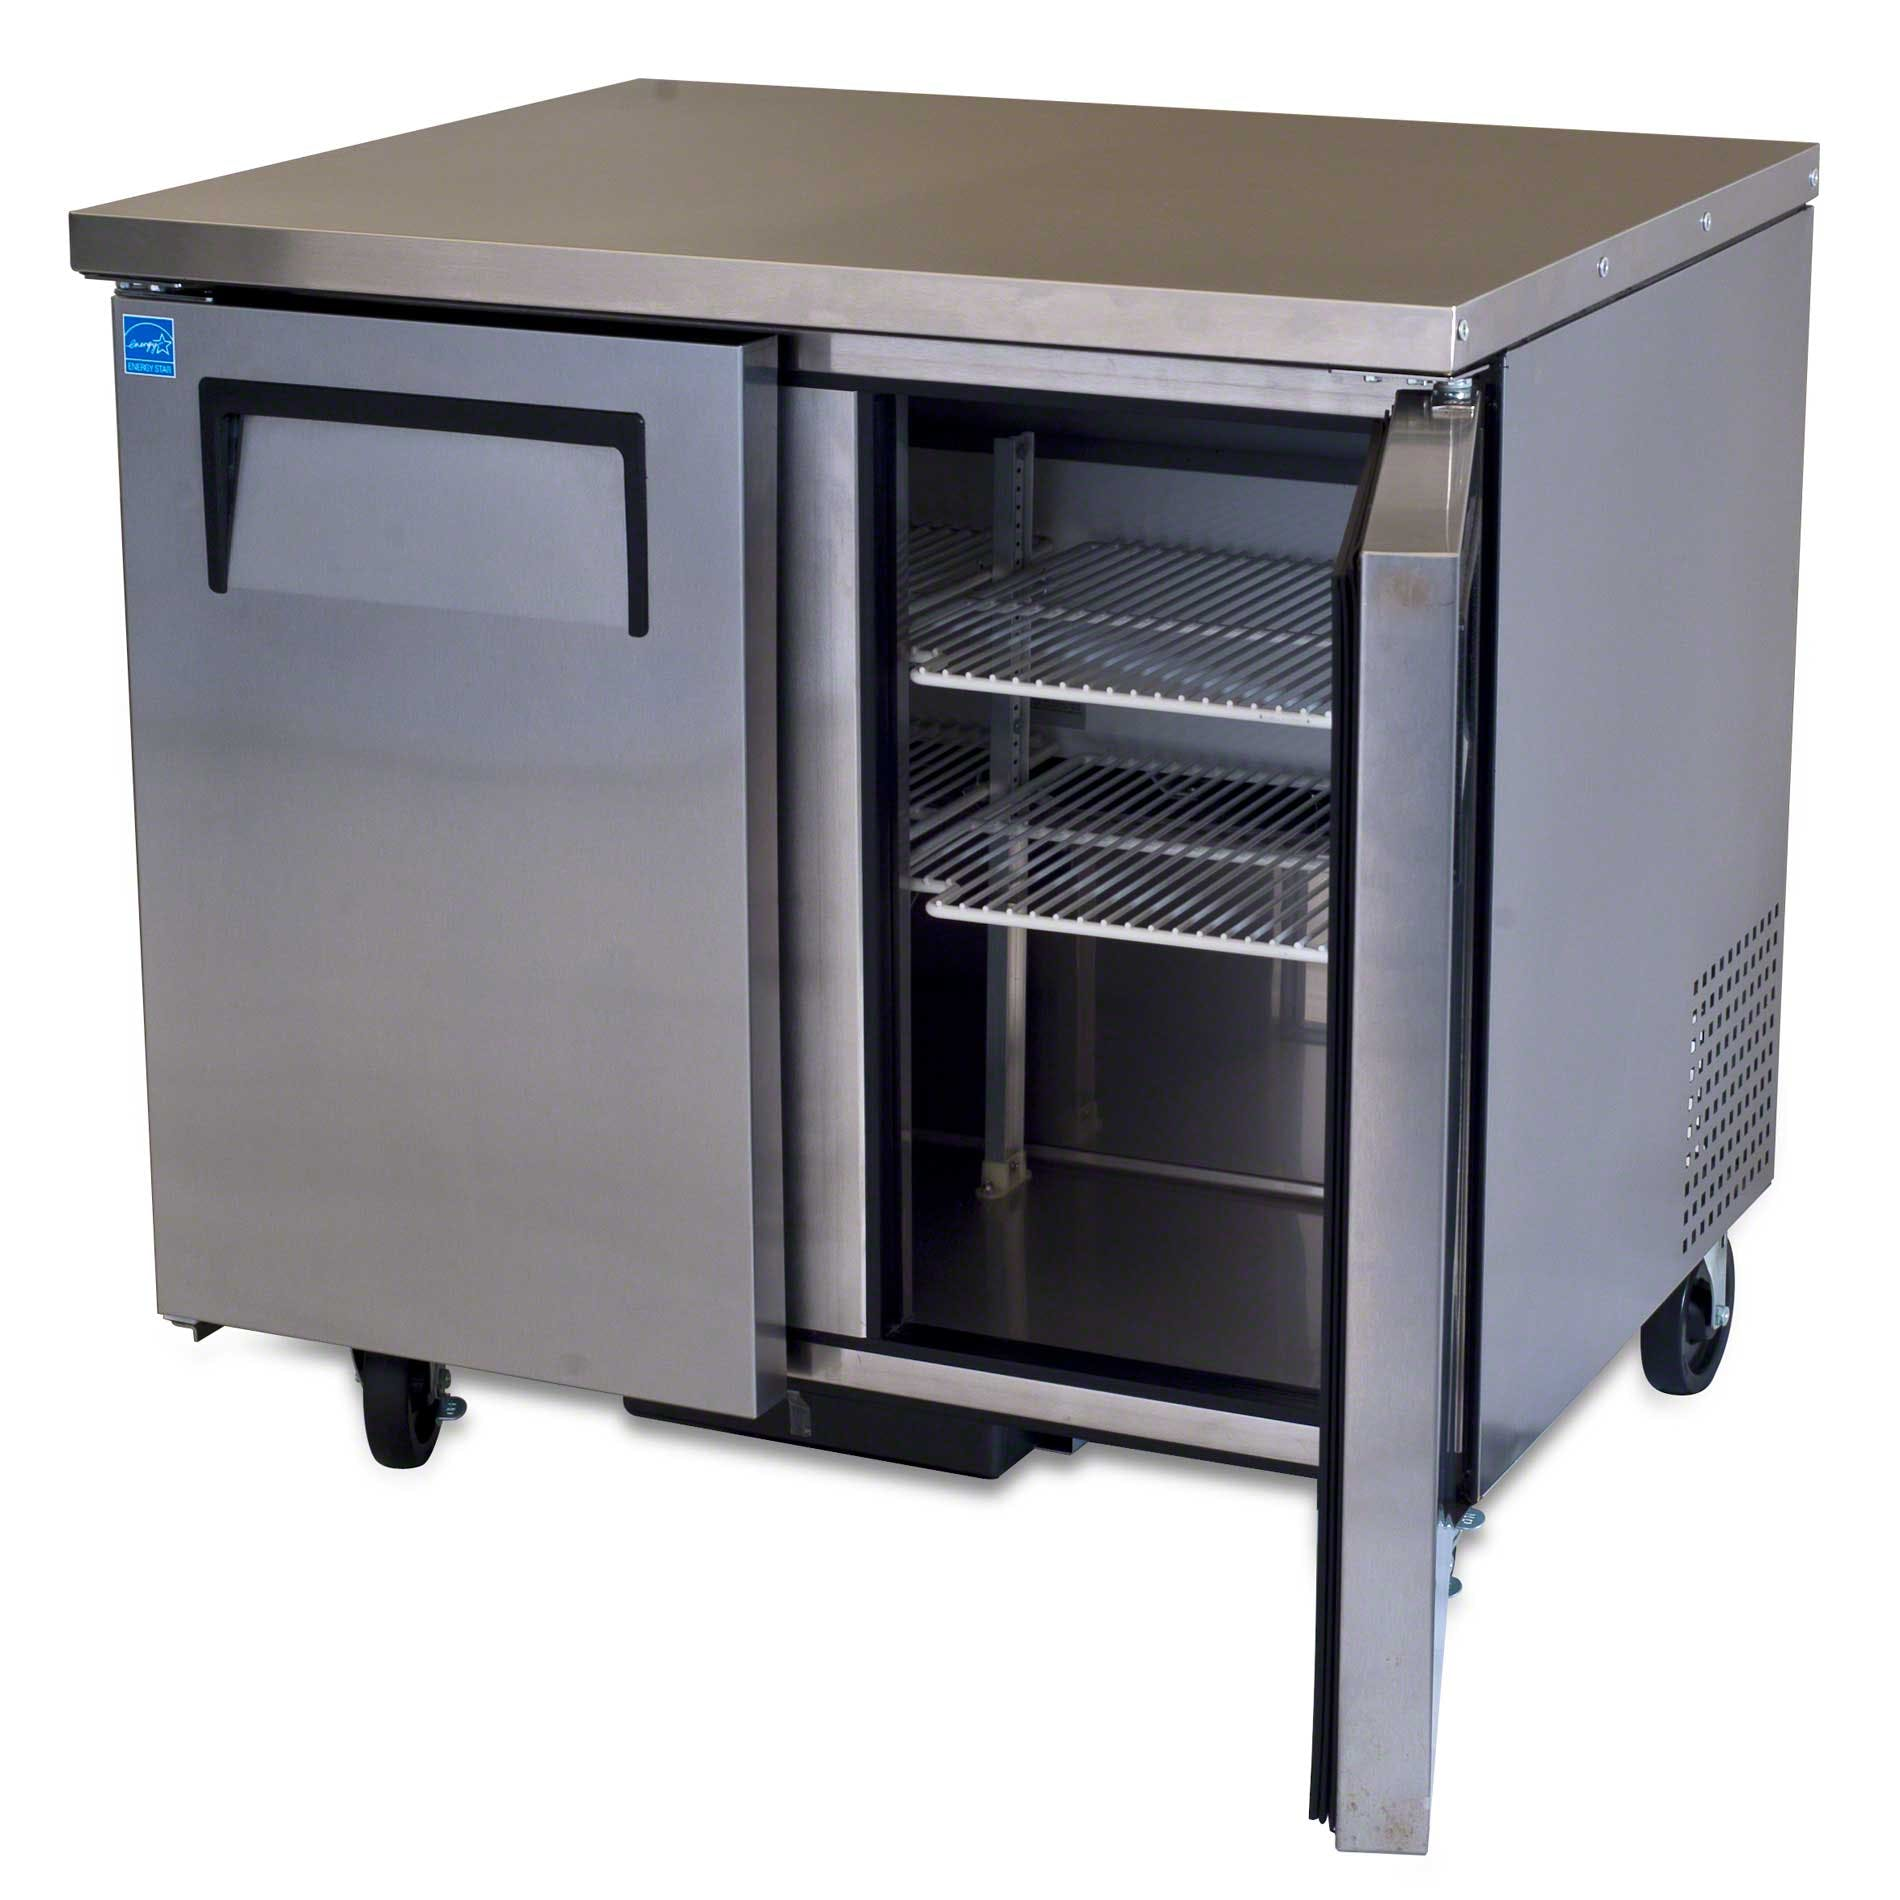 """True - TUC-36 37"""" Undercounter Refrigerator - sold by Food Service Warehouse"""